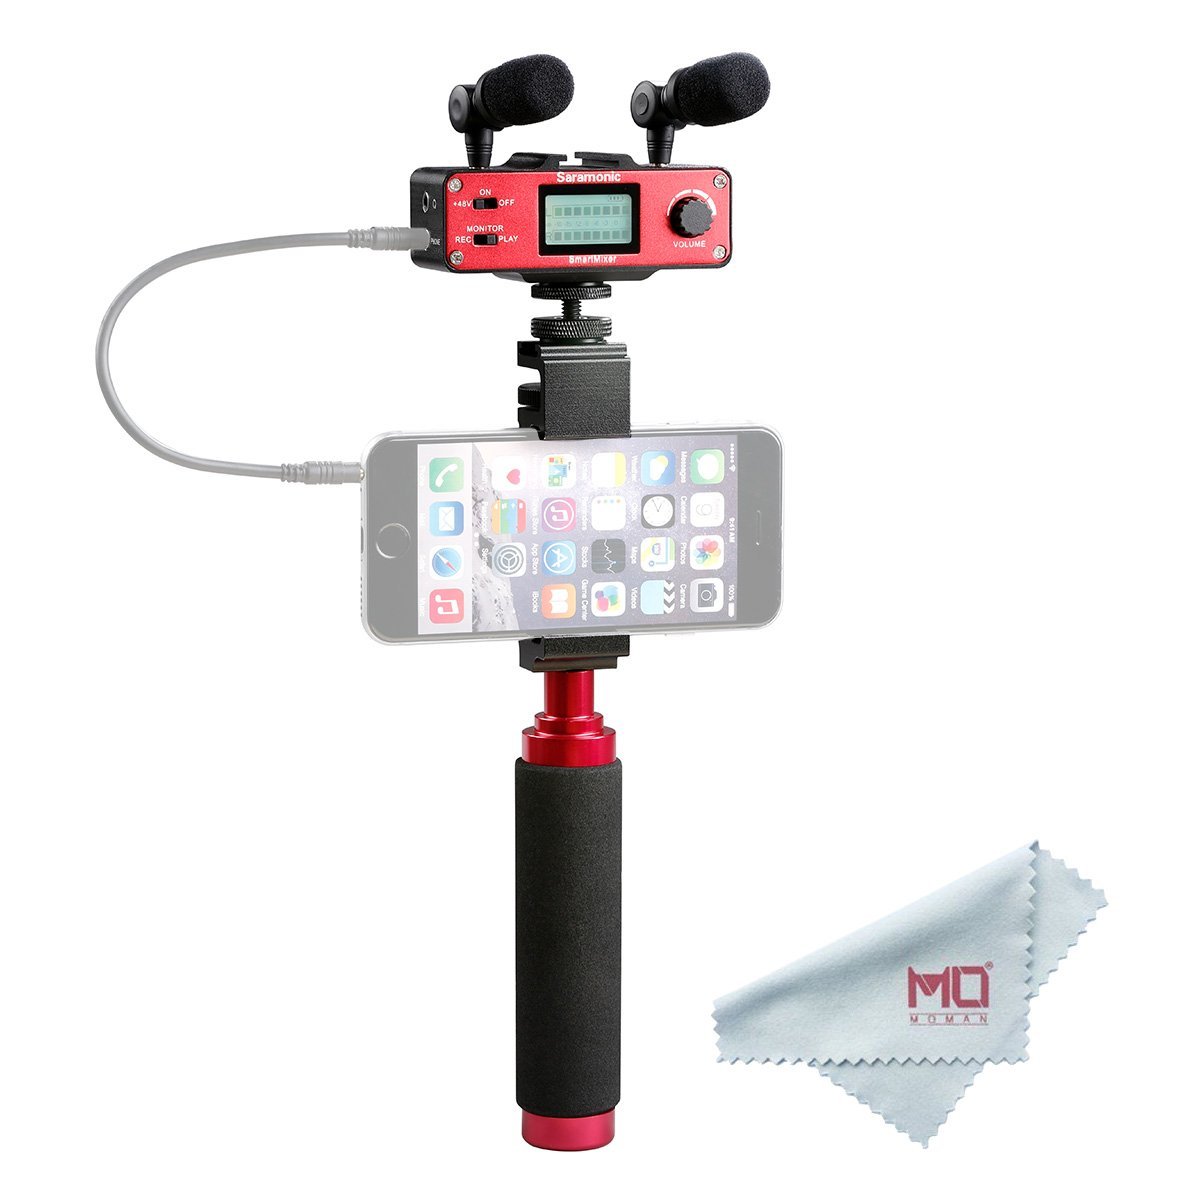 Saramonic SmartMixer professional recording stereo microphone for iPhone and Android Smartphone, with Dual Stereo Mic, Audio Mixer and Stabilizing Rig